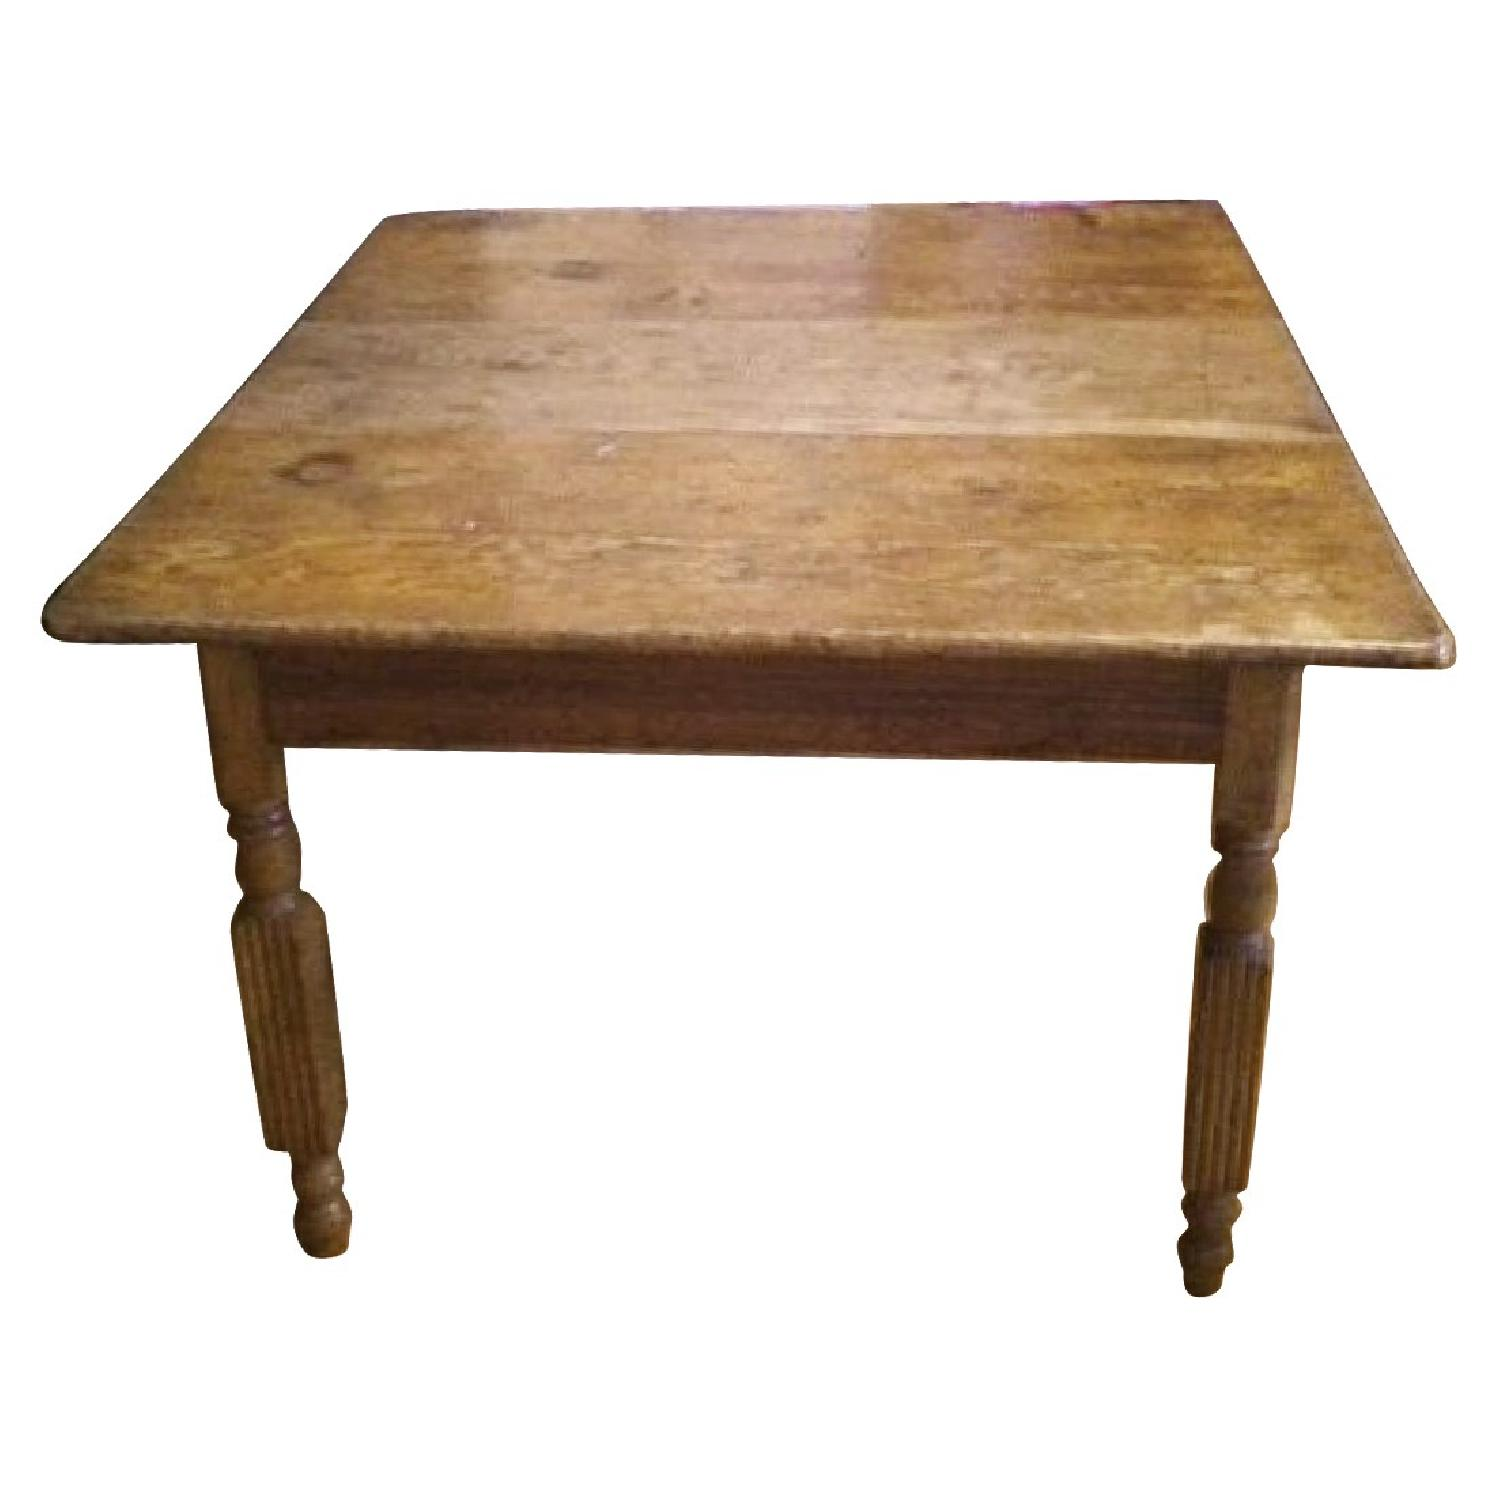 Used dining tables for sale in NYC AptDeco